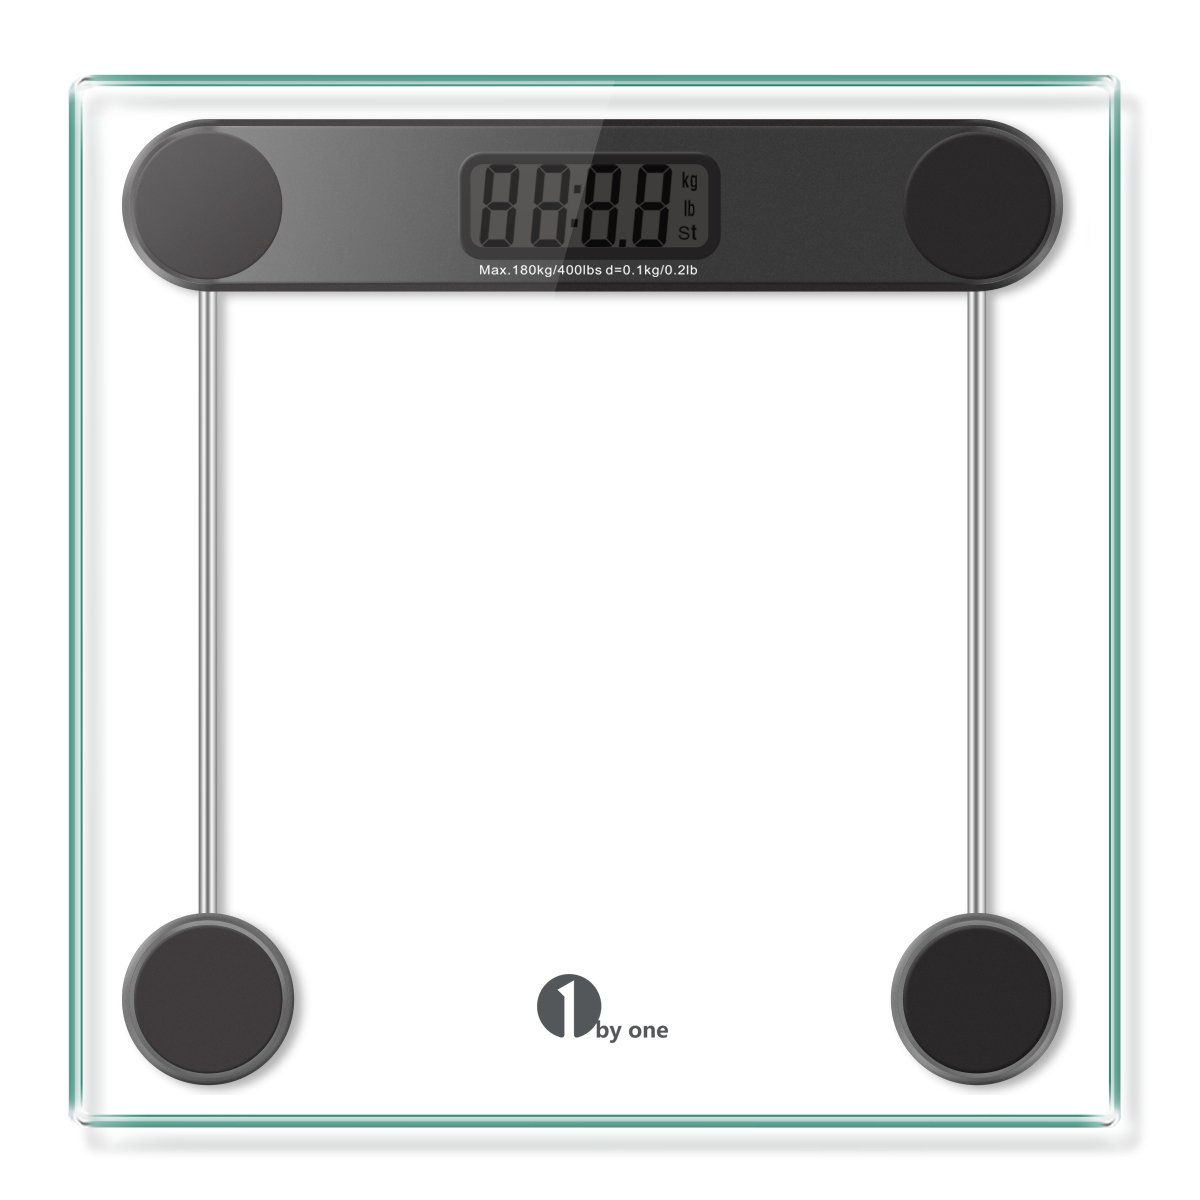 Amazoncom Byone Digital Body Weight Scale Bathroom Scale With - Large display digital bathroom scales for bathroom decor ideas